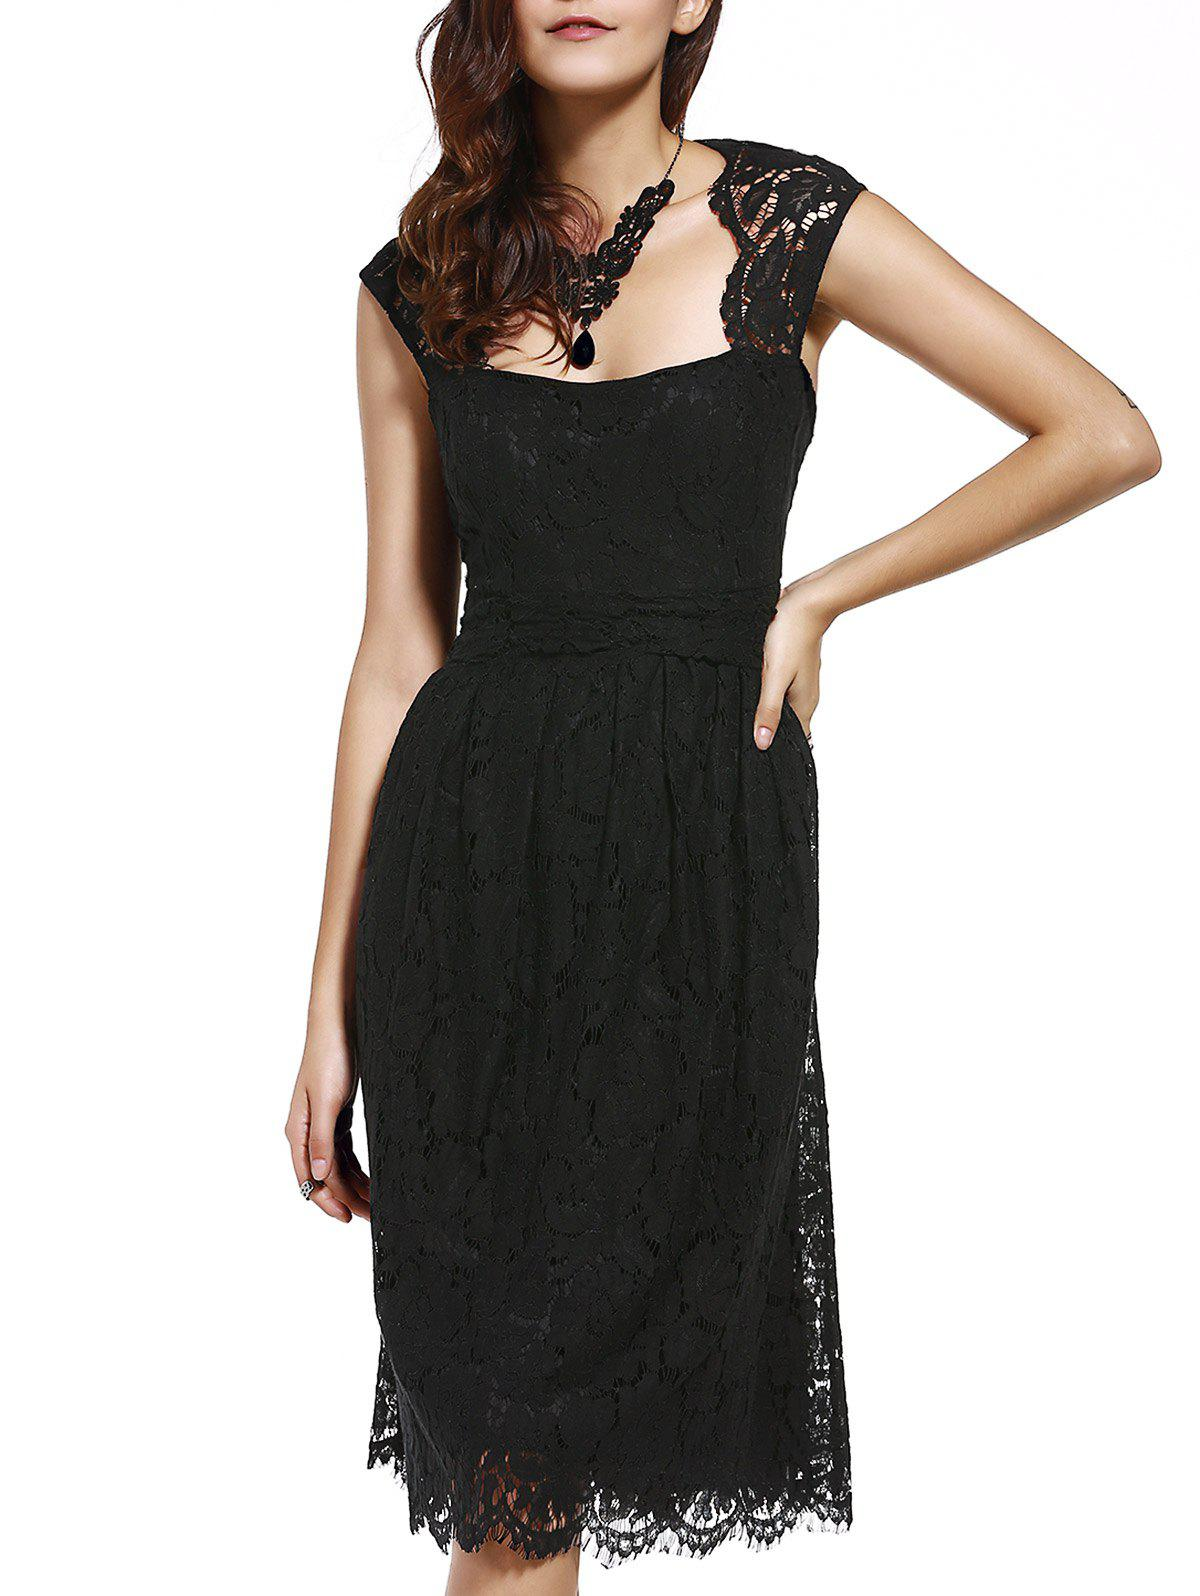 Garceful Women's Strappy Lace Hollow Out Dress - BLACK L